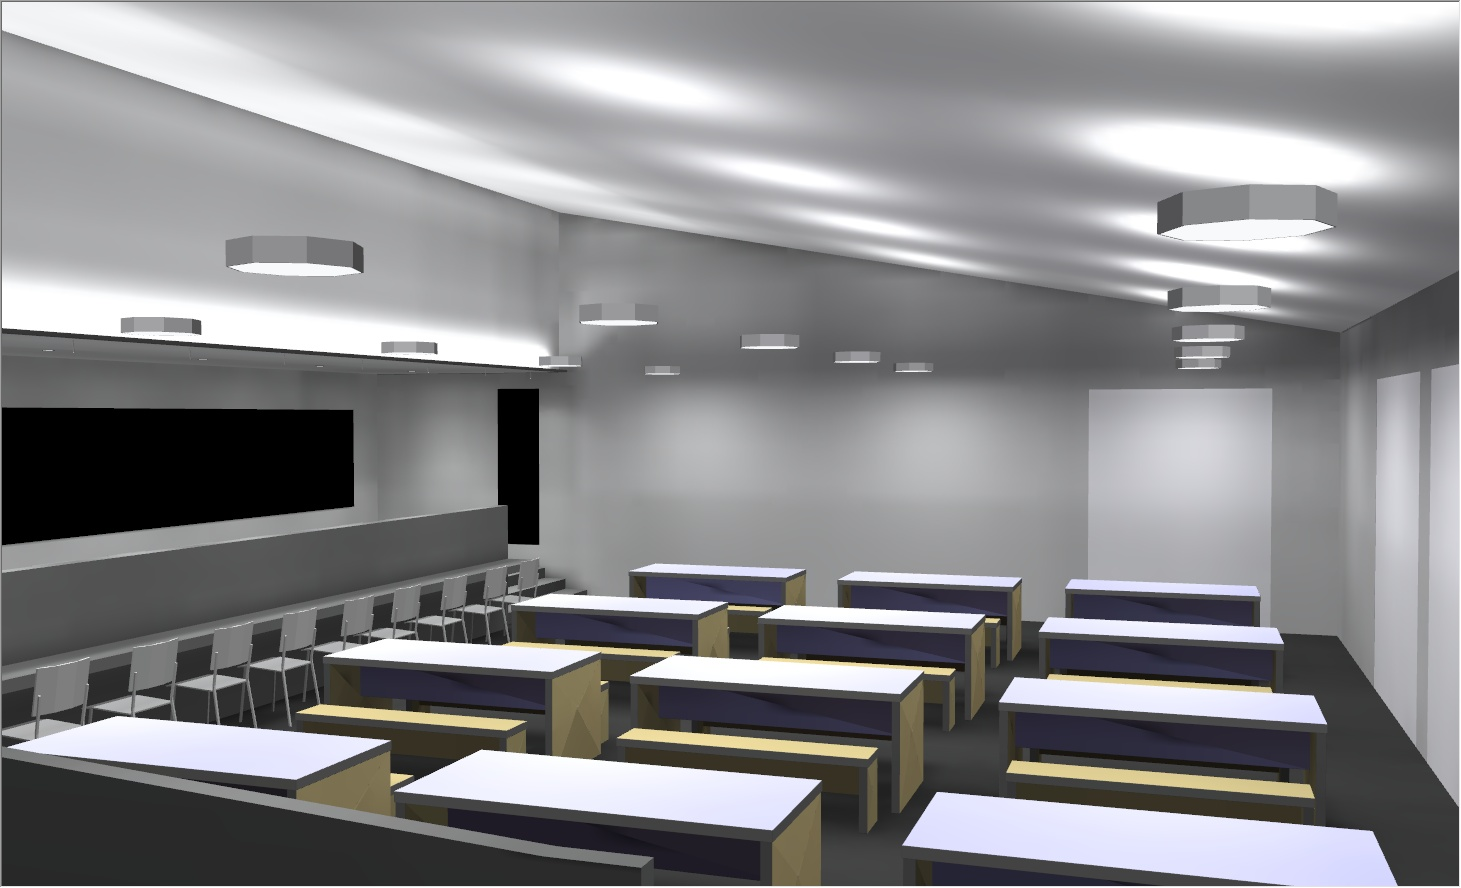 Lighting Simulation of Refectory Area